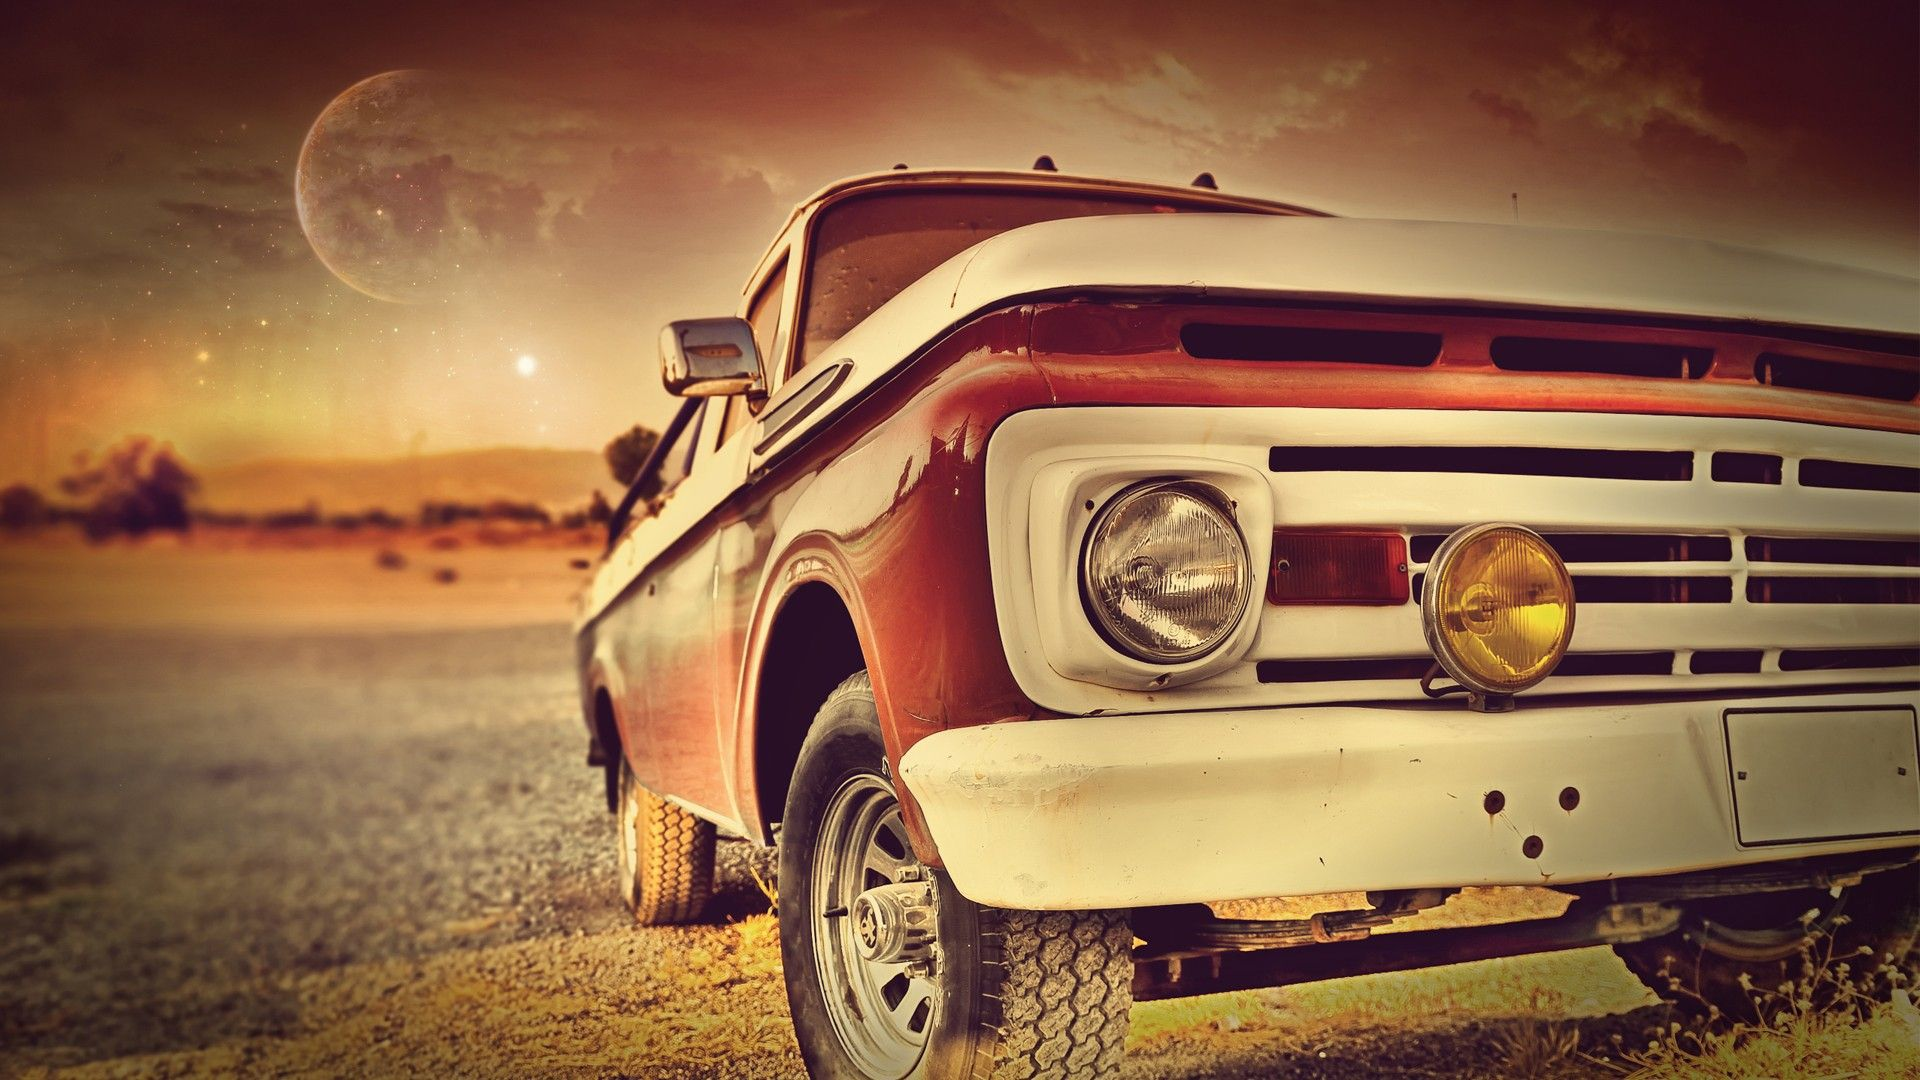 Hd Vintage Wallpapers Top Free Hd Vintage Backgrounds Wallpaperaccess